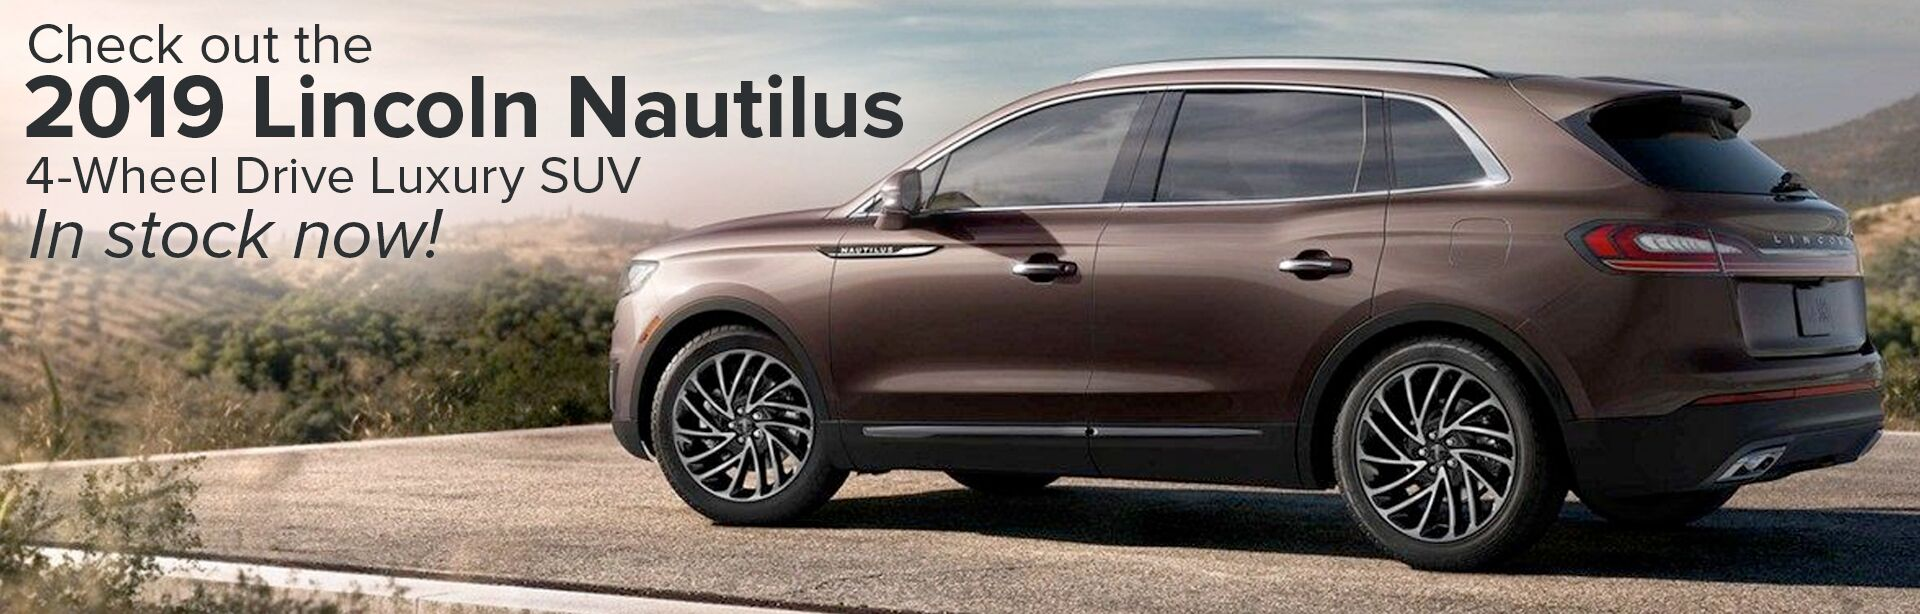 2019 Lincoln Nautilus Now In Stock